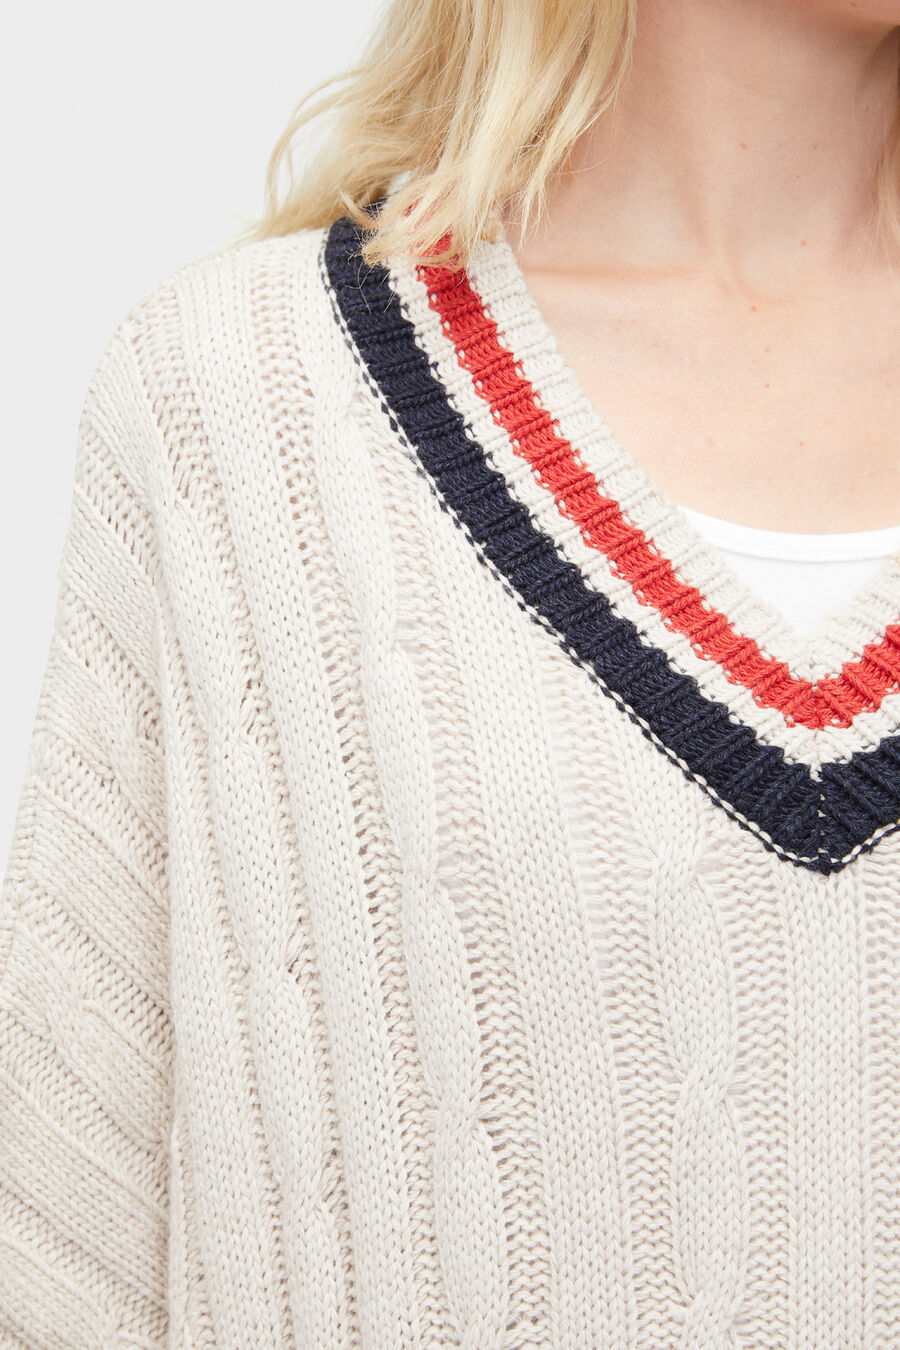 Weslynn Sweater Poncho - Image 3 of 4